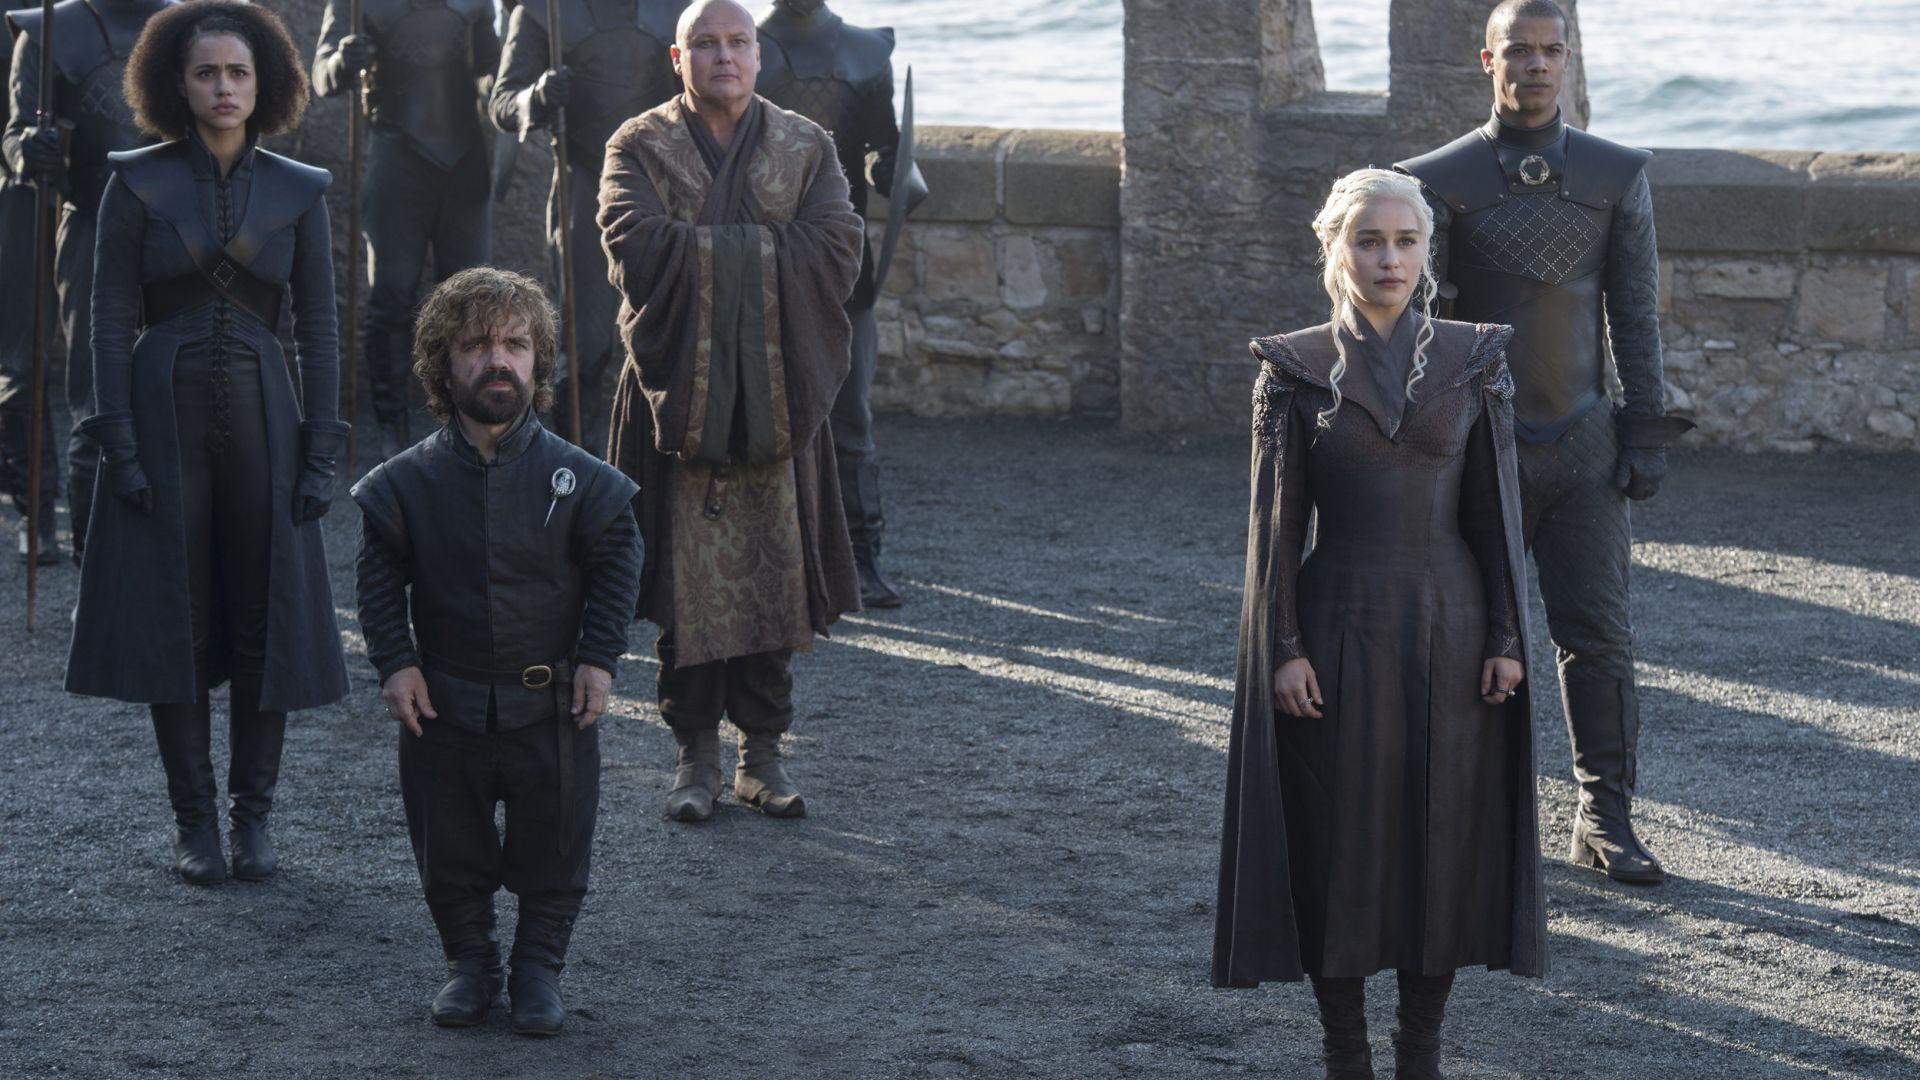 Game of Thrones, Emilia Clarke, Peter Dinklage, season 7, best tv series (horizontal)